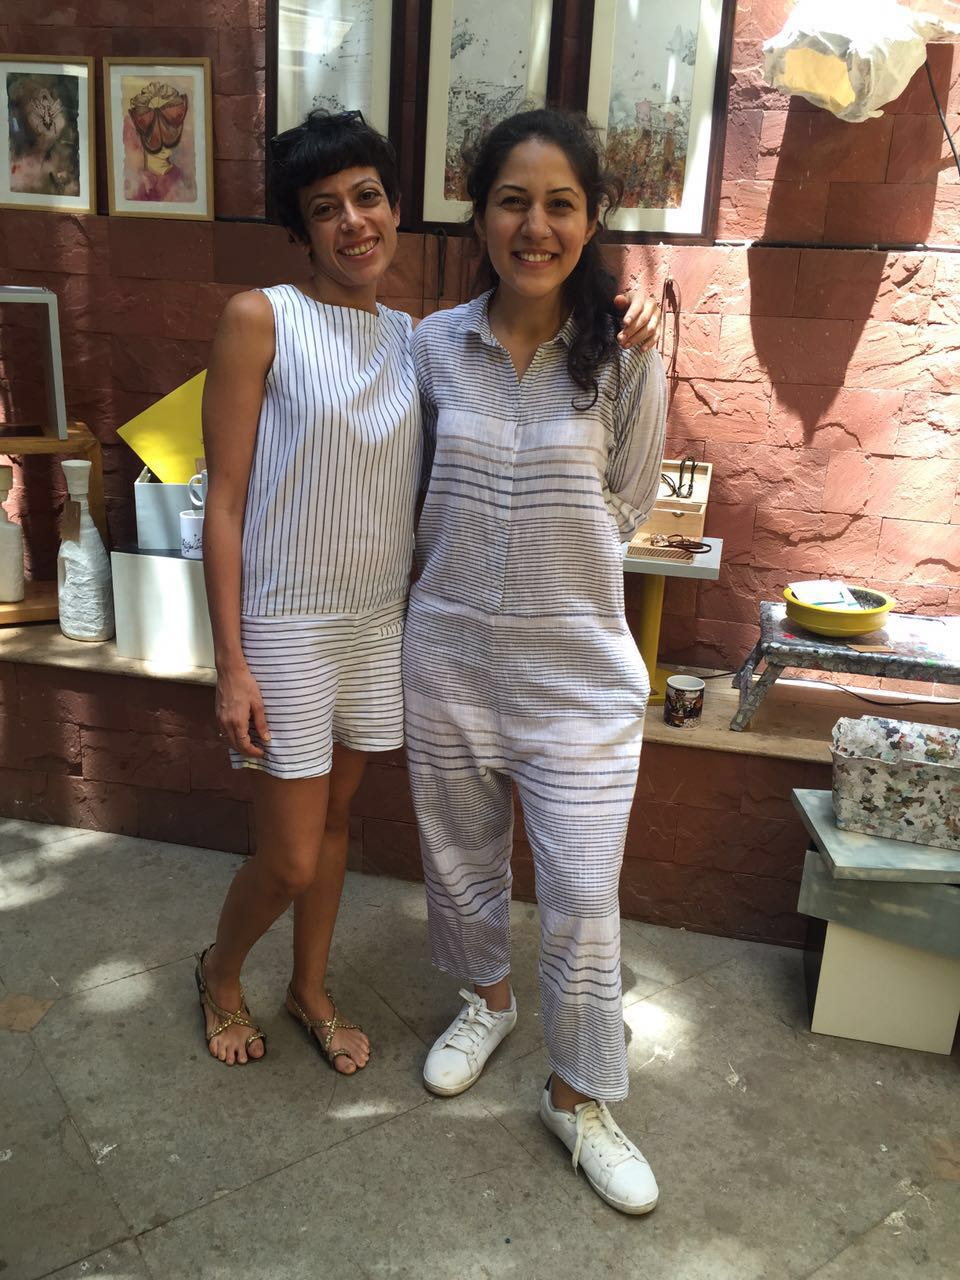 Ratna Gupta and Pallavi Dhyani pose in front of the RESTORIES stall. RESTORIES is Artist Ratna Gupta's pet project. As the name RESTORIES suggests, she upcycles ordinary everyday objects and converts them into stylish extraordinary designs for your home.